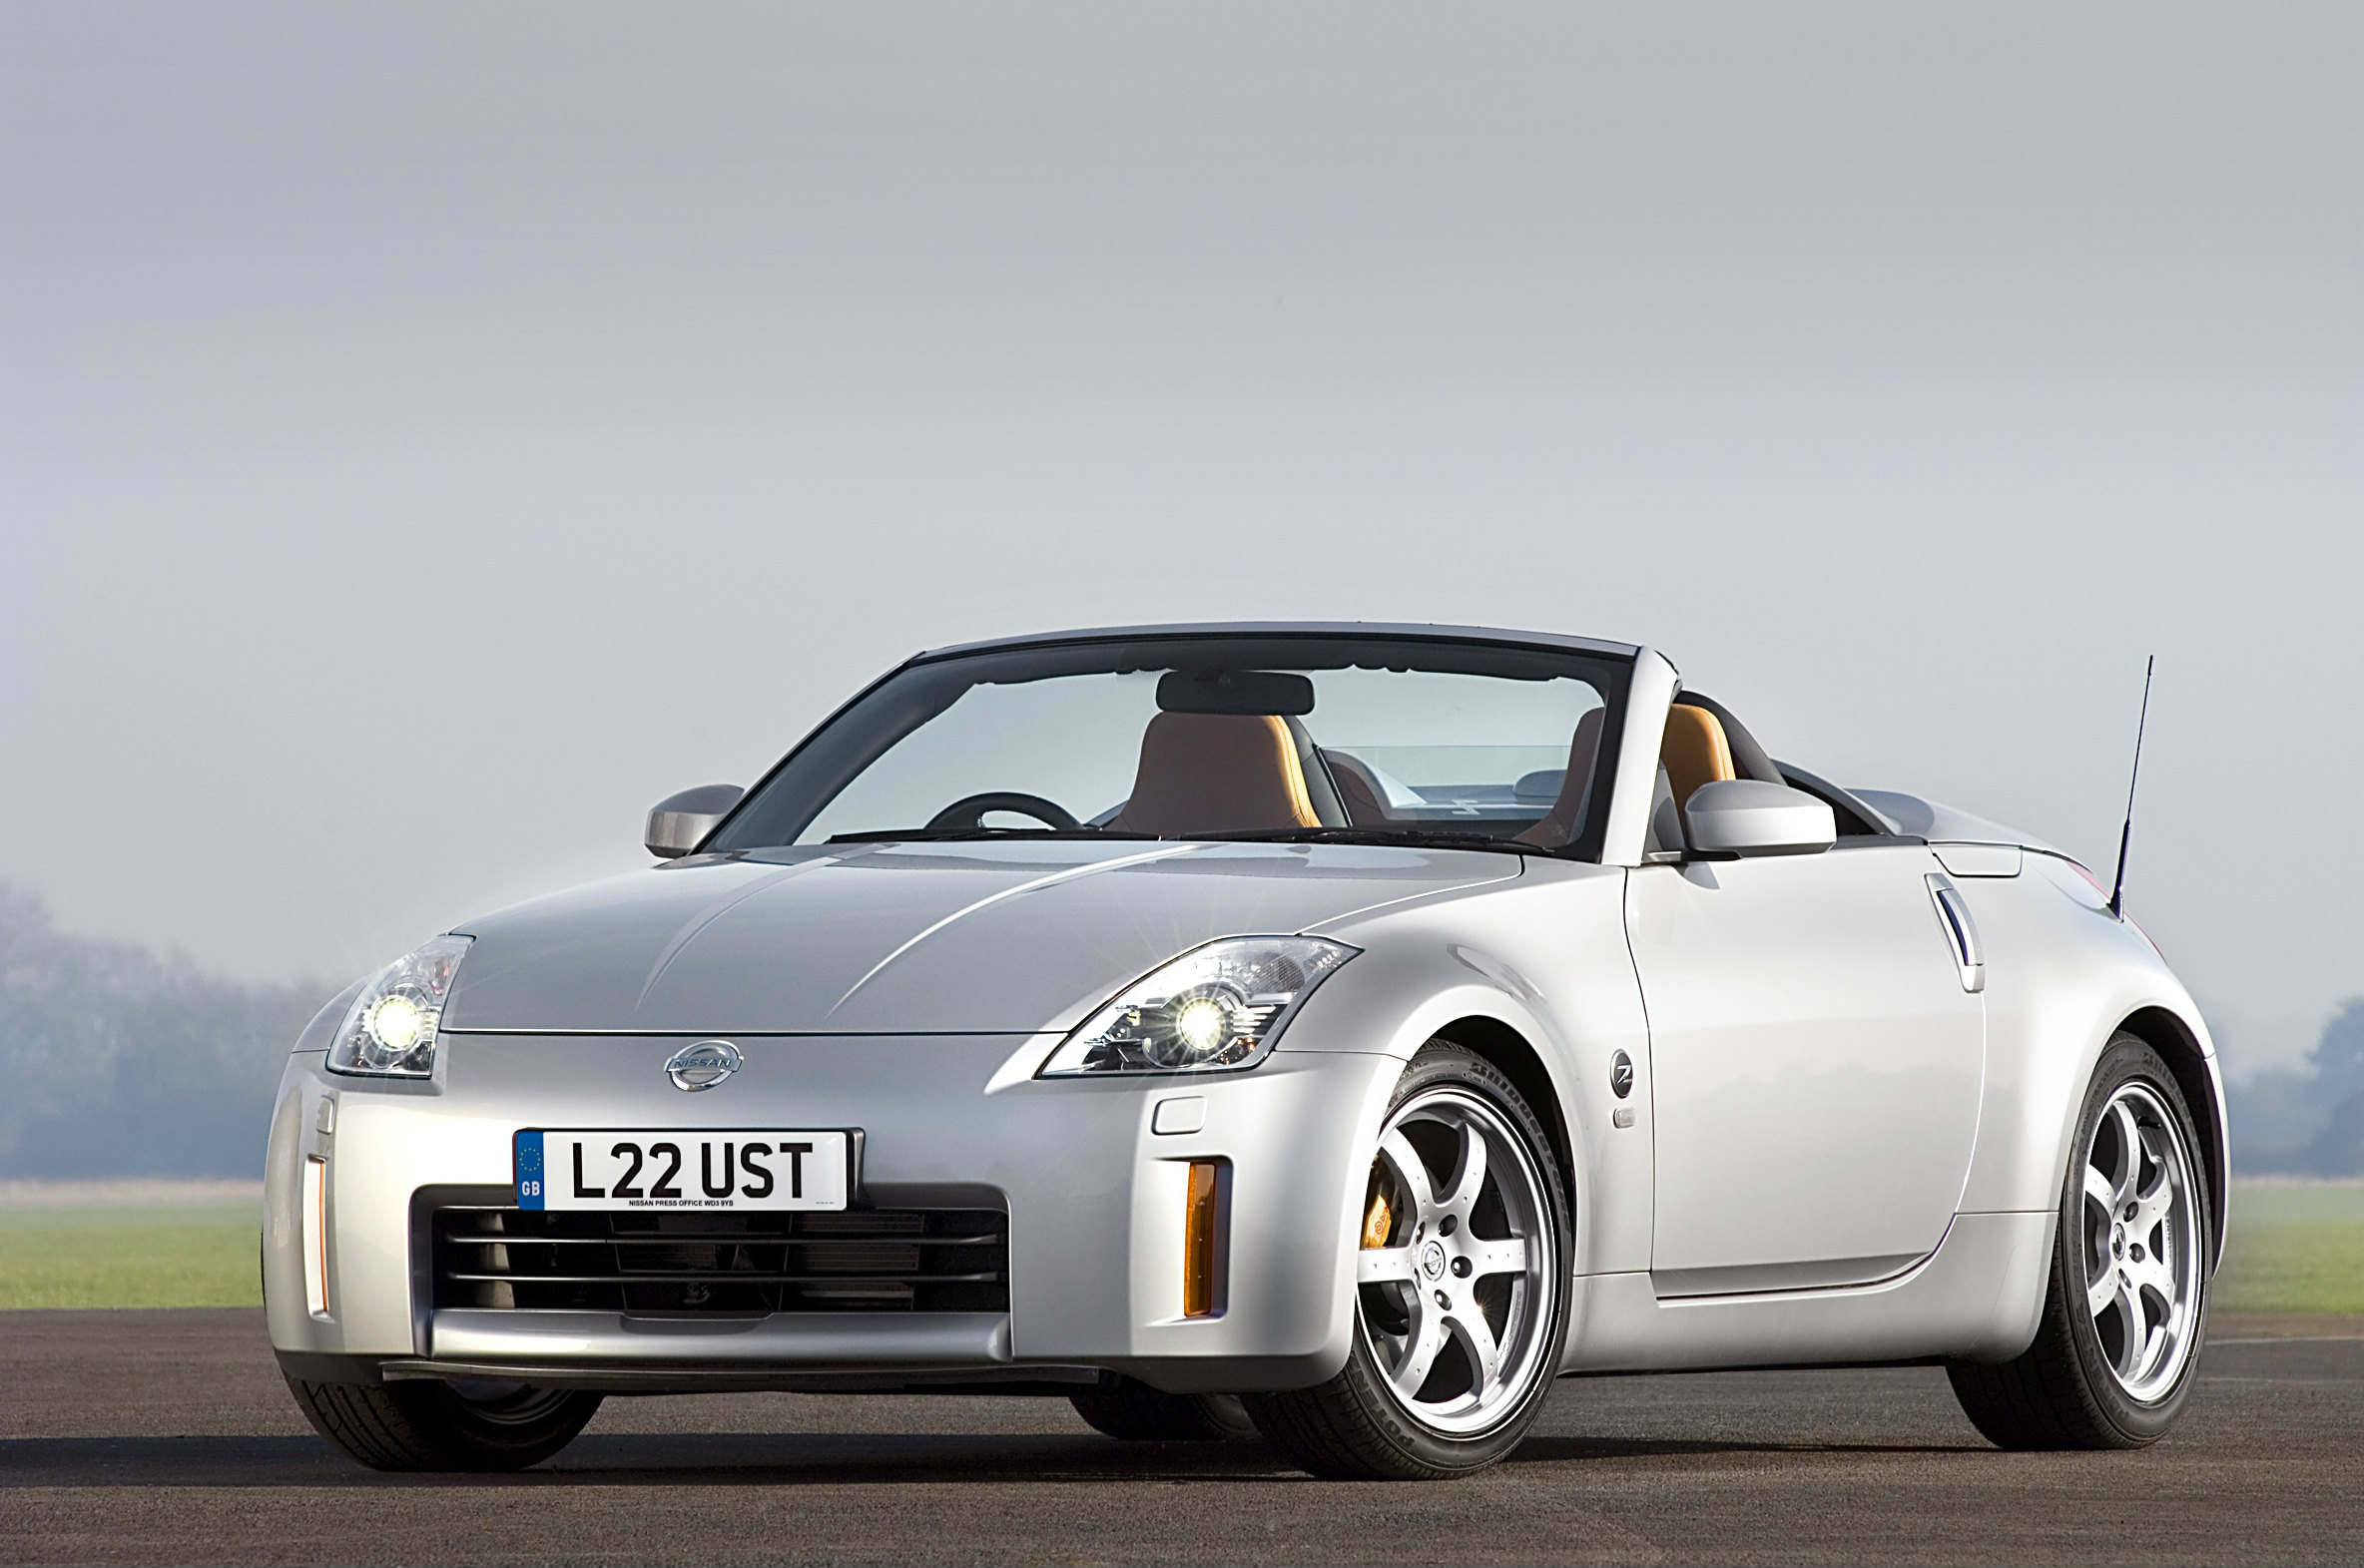 image of a silver nissan 350z car exterior